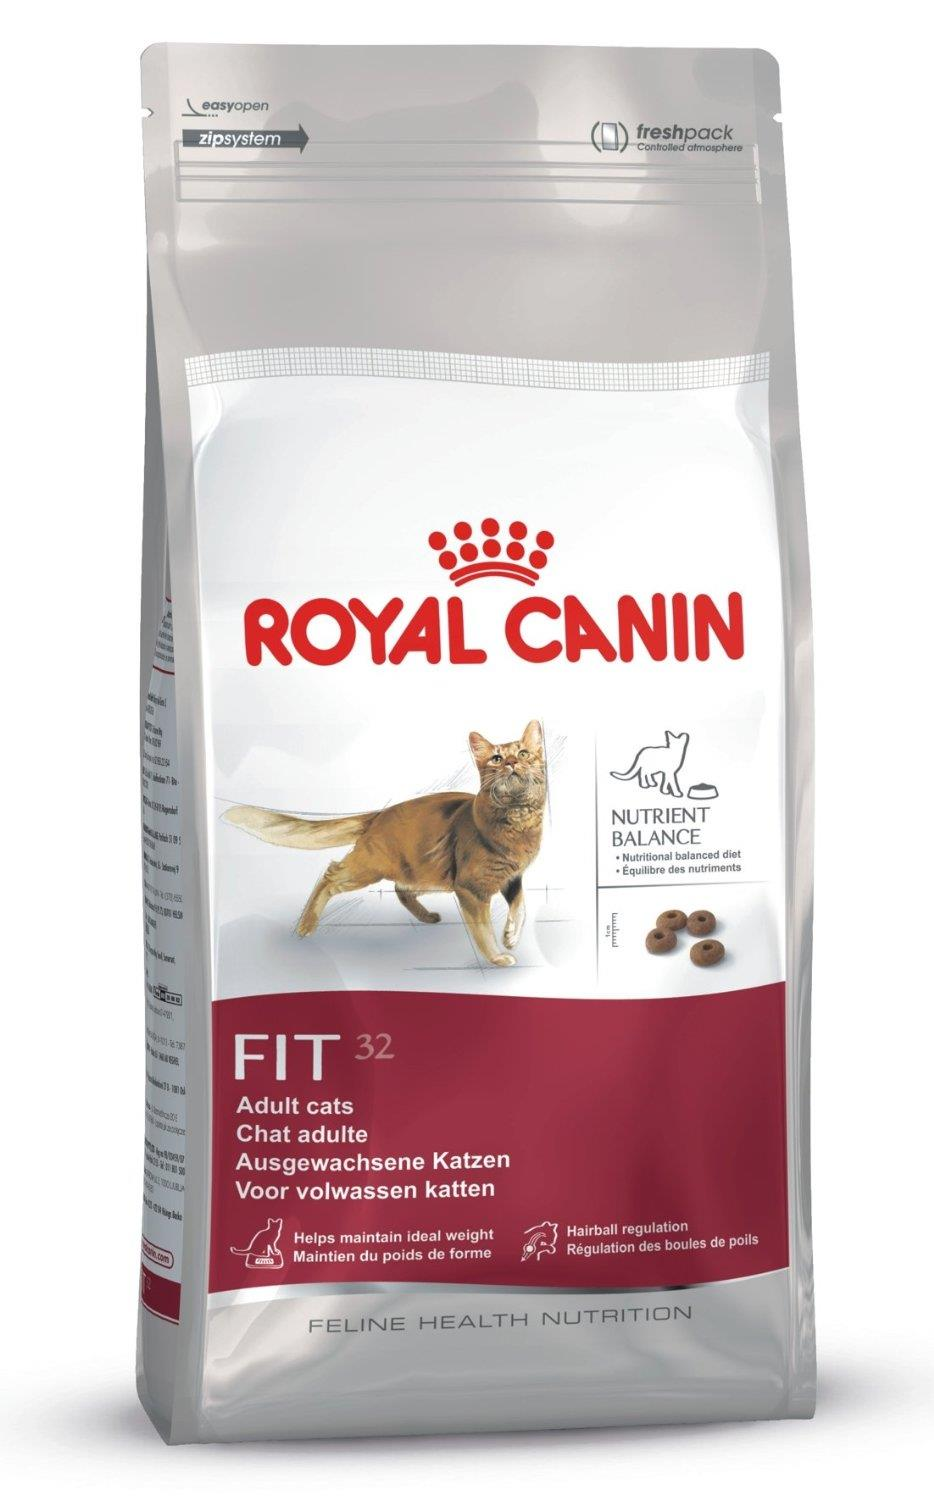 Royal canin sale - Baby doll lingerie sets